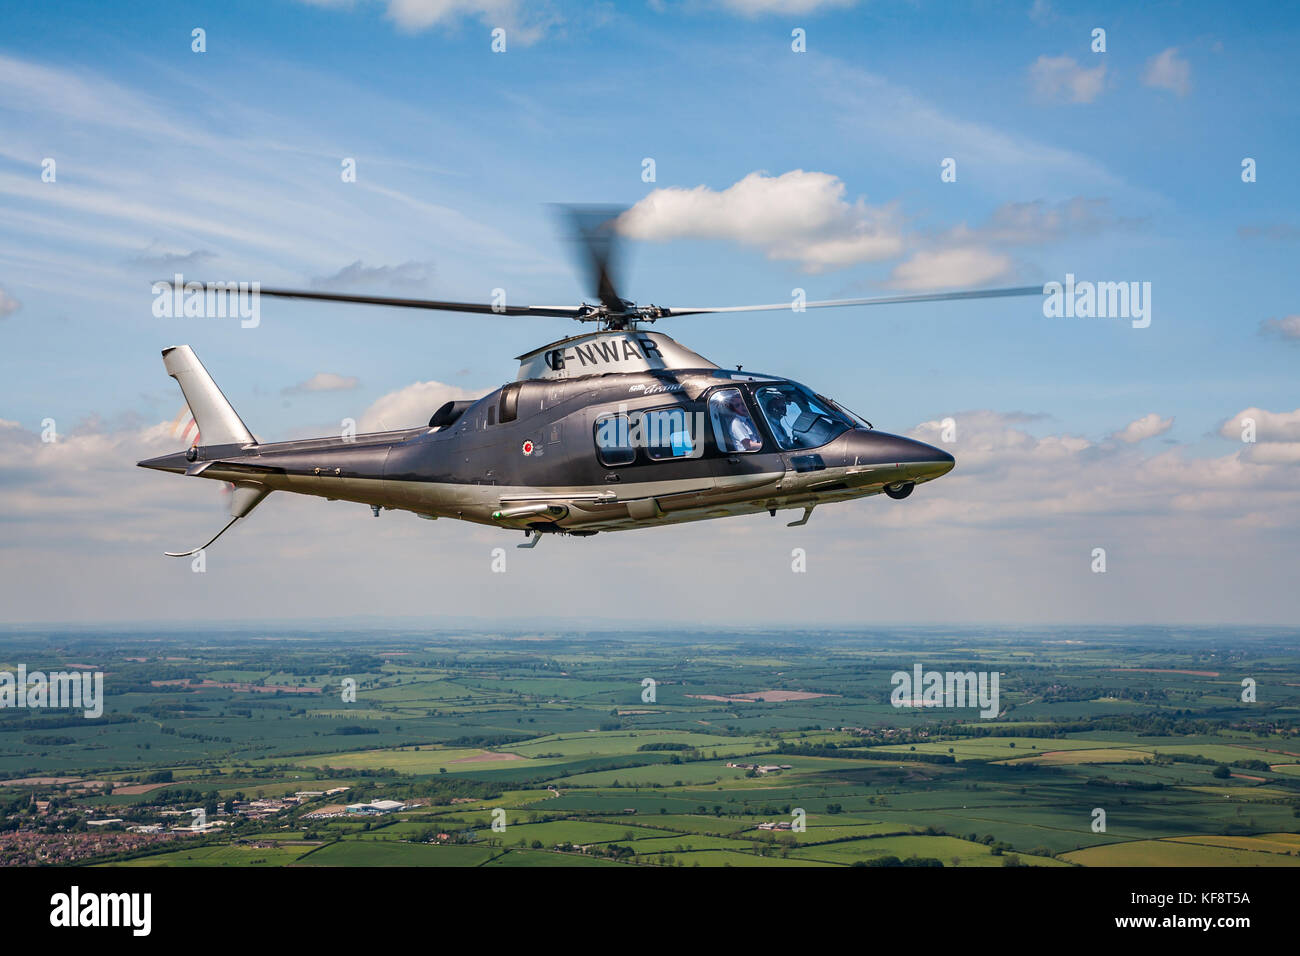 Air to Air Photographs of Helicopters shot over the Northamptonshire Countryside - Stock Image